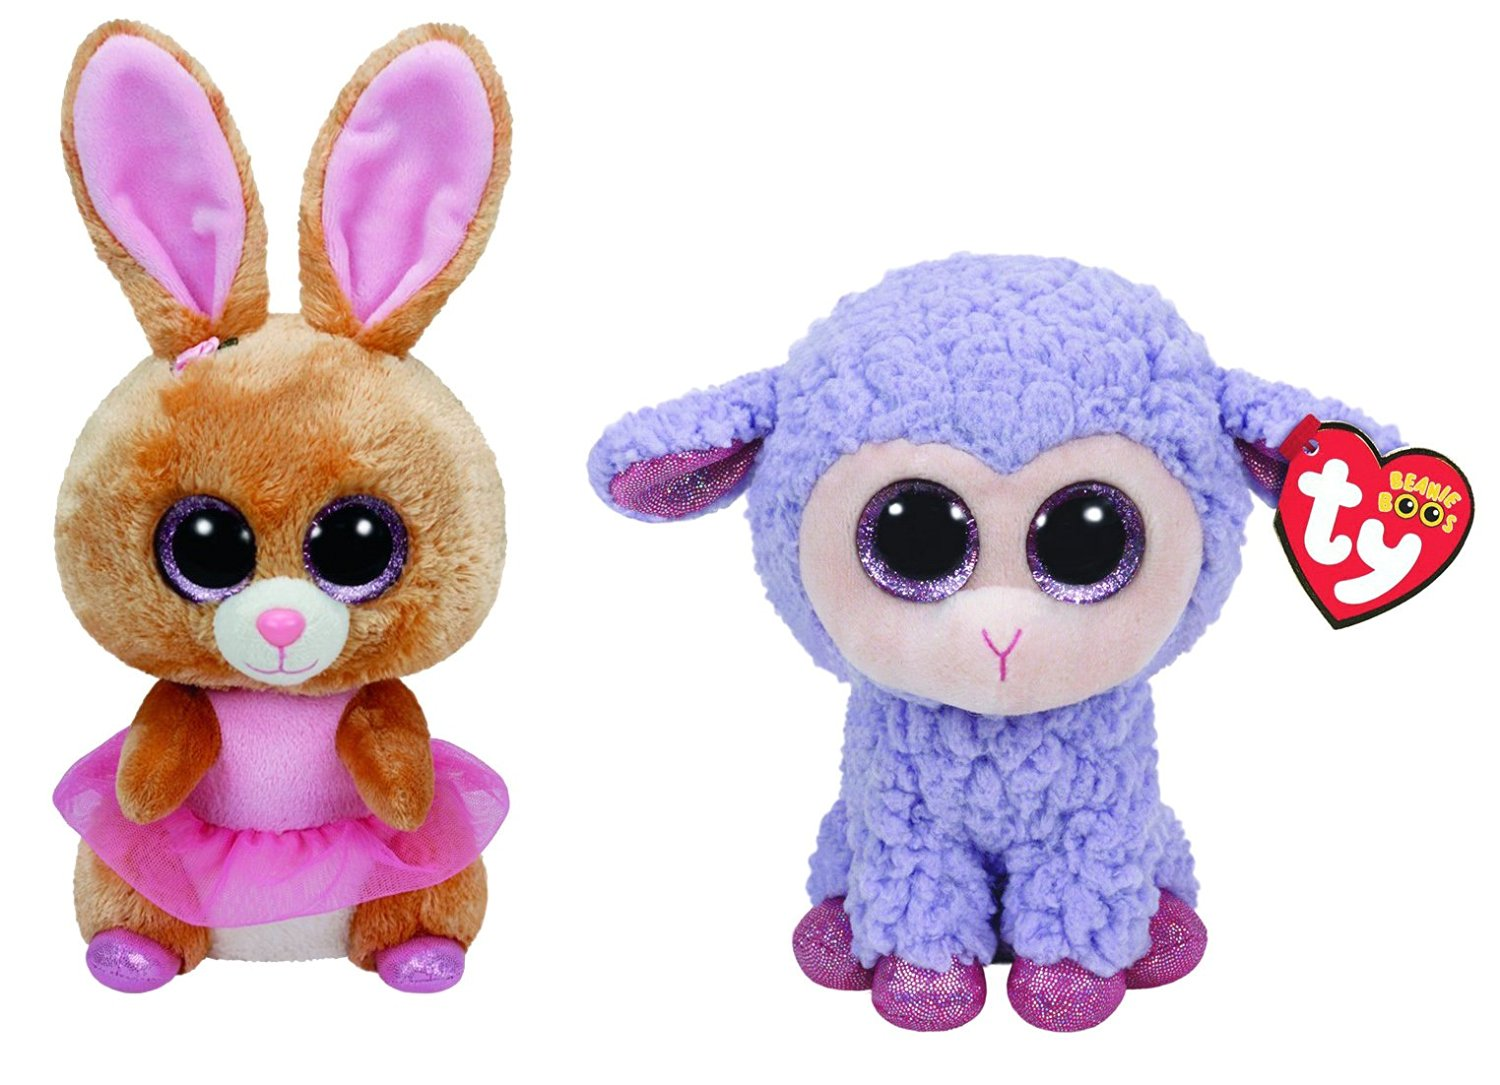 60b2417a912 Ty Easter 2016 Beanie Boos Twinkle Toes the Ballerina bunny and Lavender  the Purple Lamb